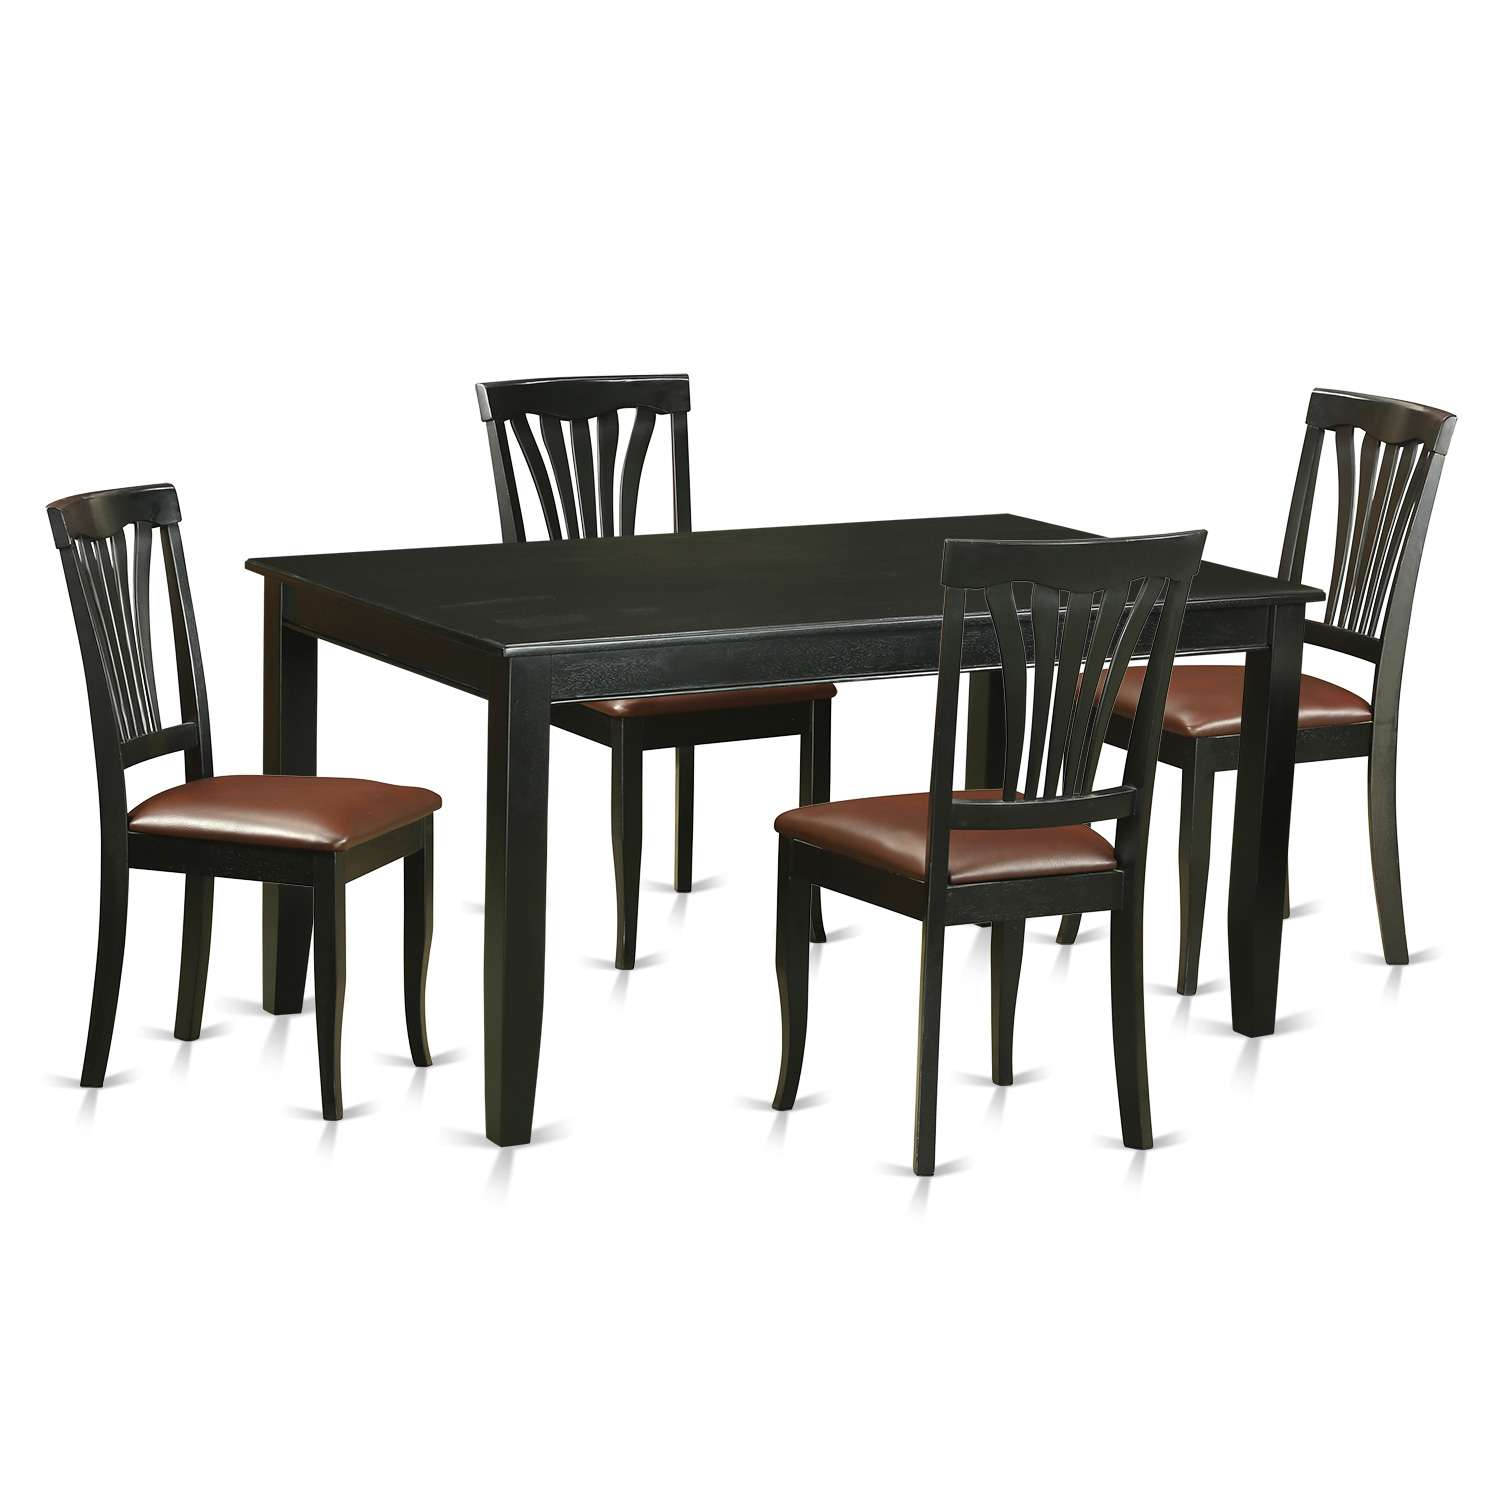 Superb East West Furniture Duav5 Blk Lc Gmtry Best Dining Table And Chair Ideas Images Gmtryco